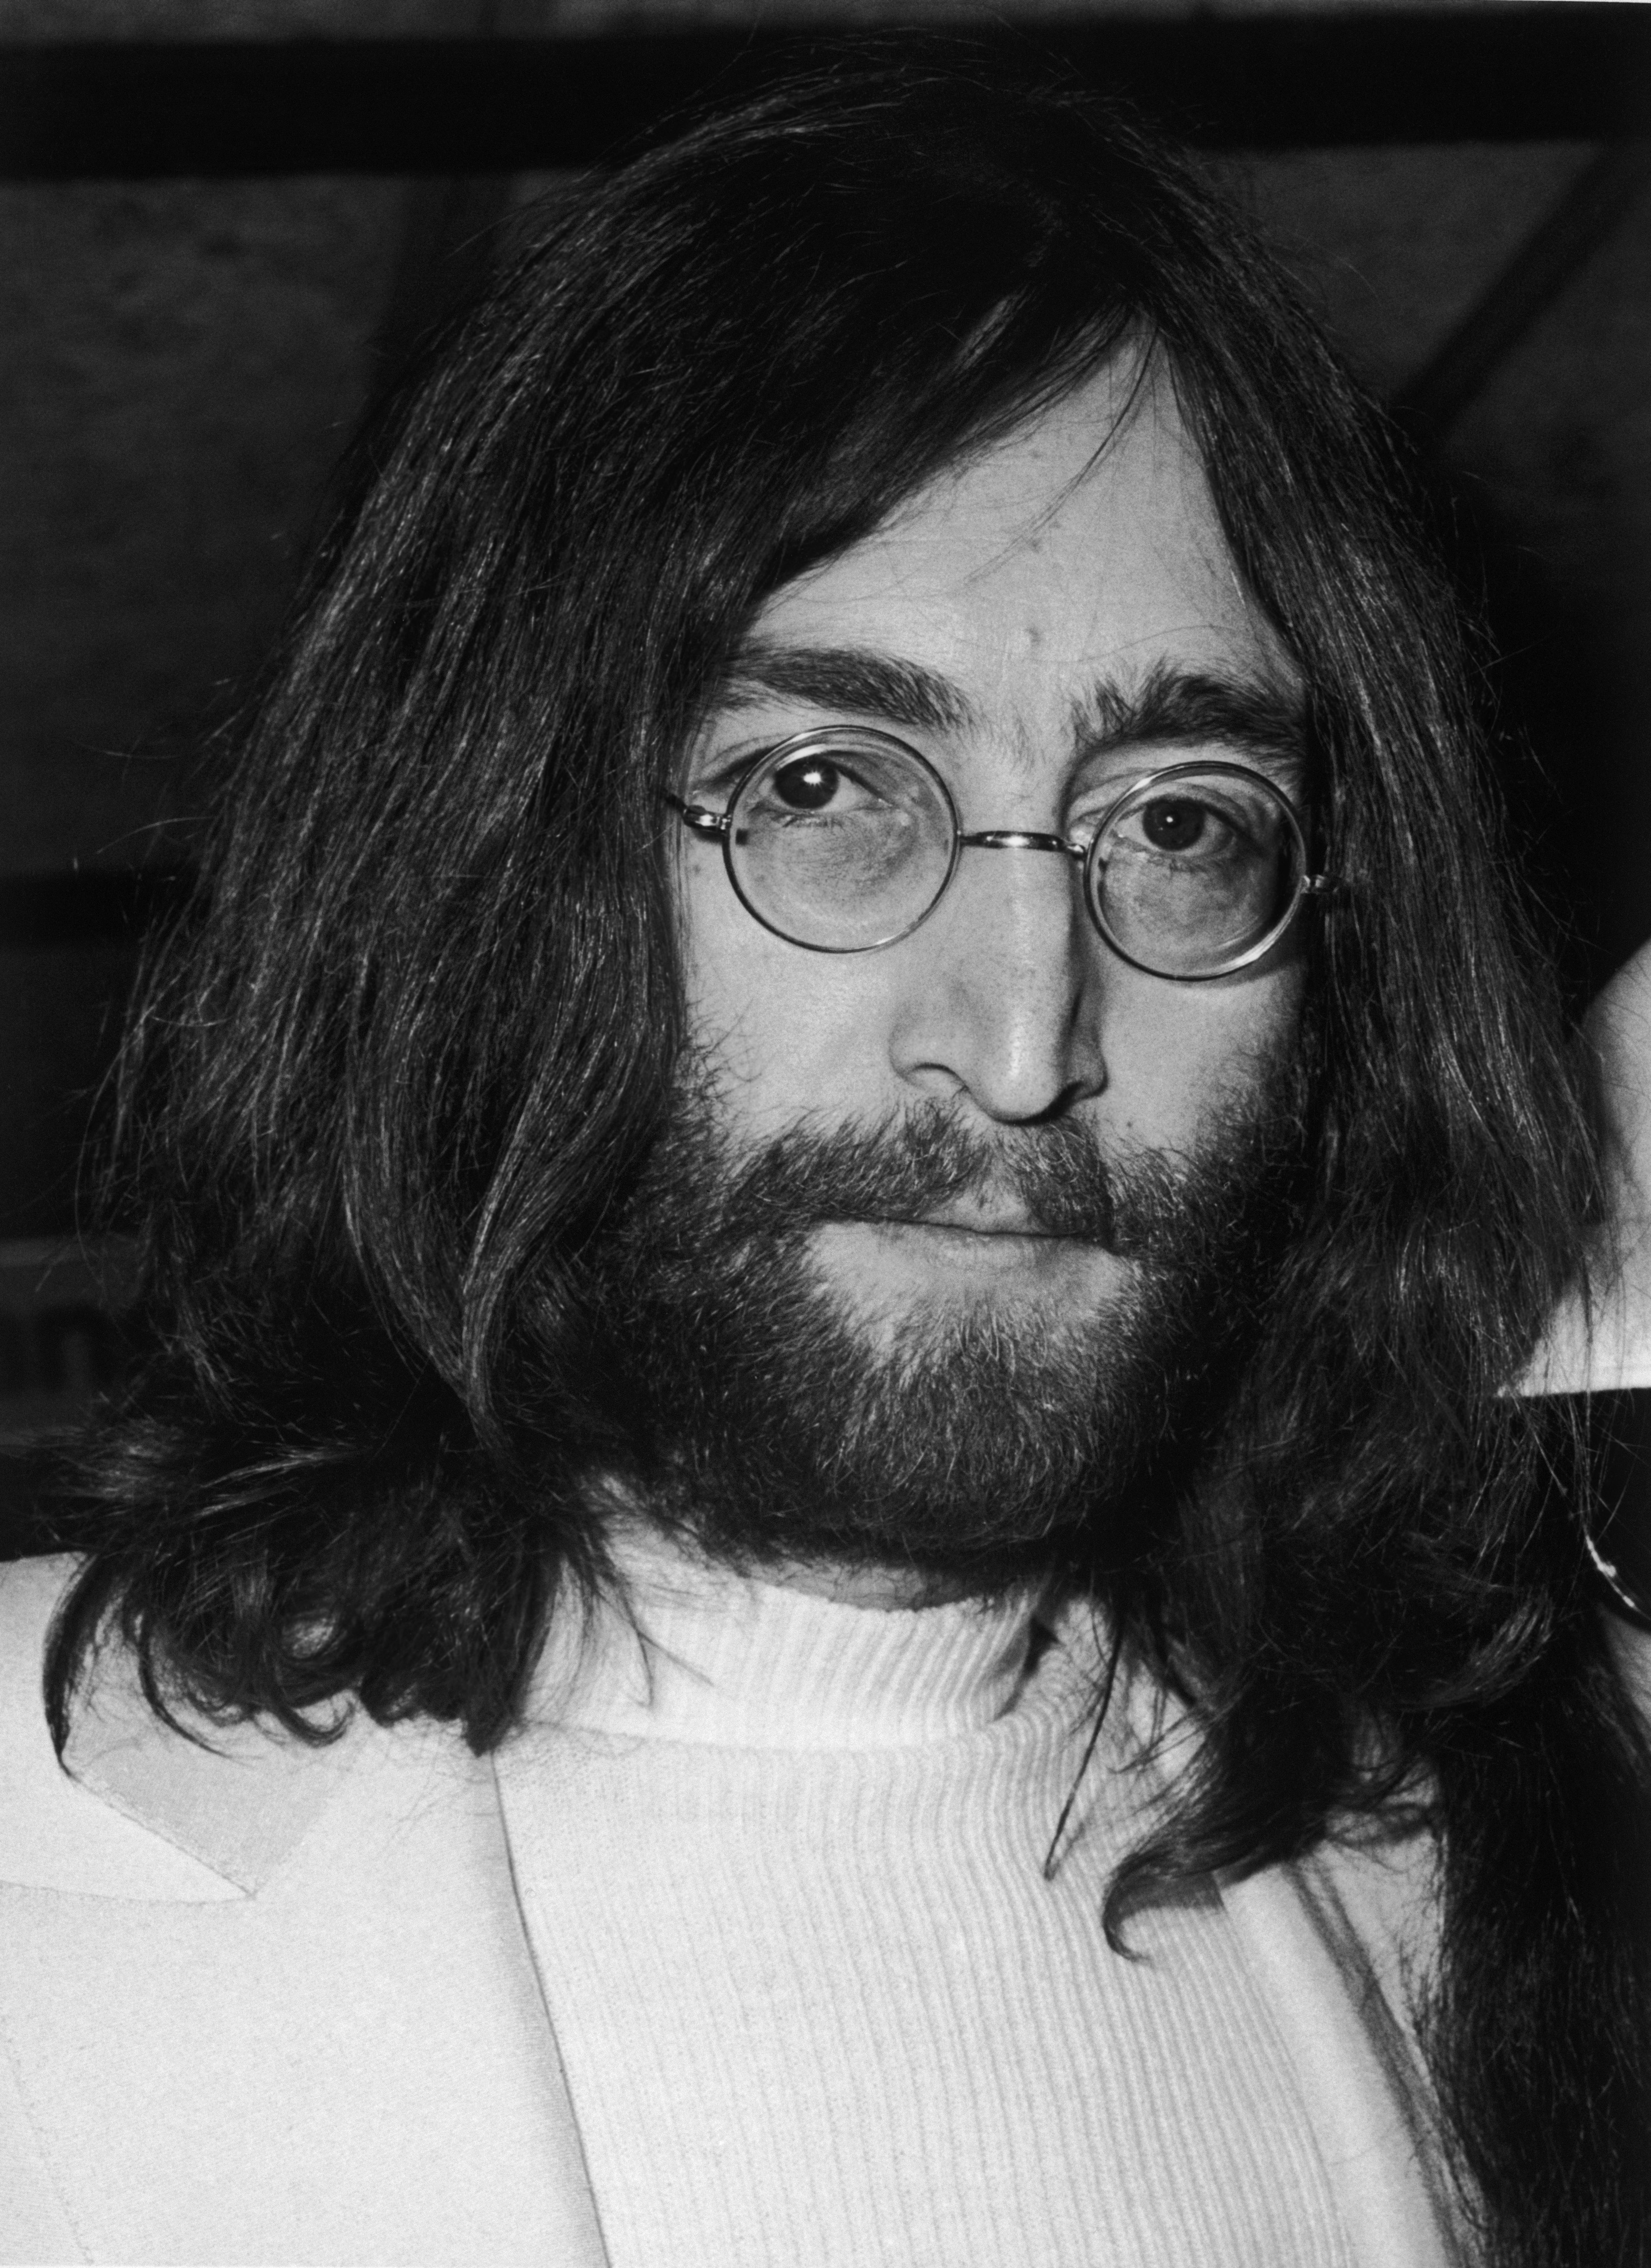 Legendary Singer, songwriter and guitarist John Lennon (Source: Getty Images)